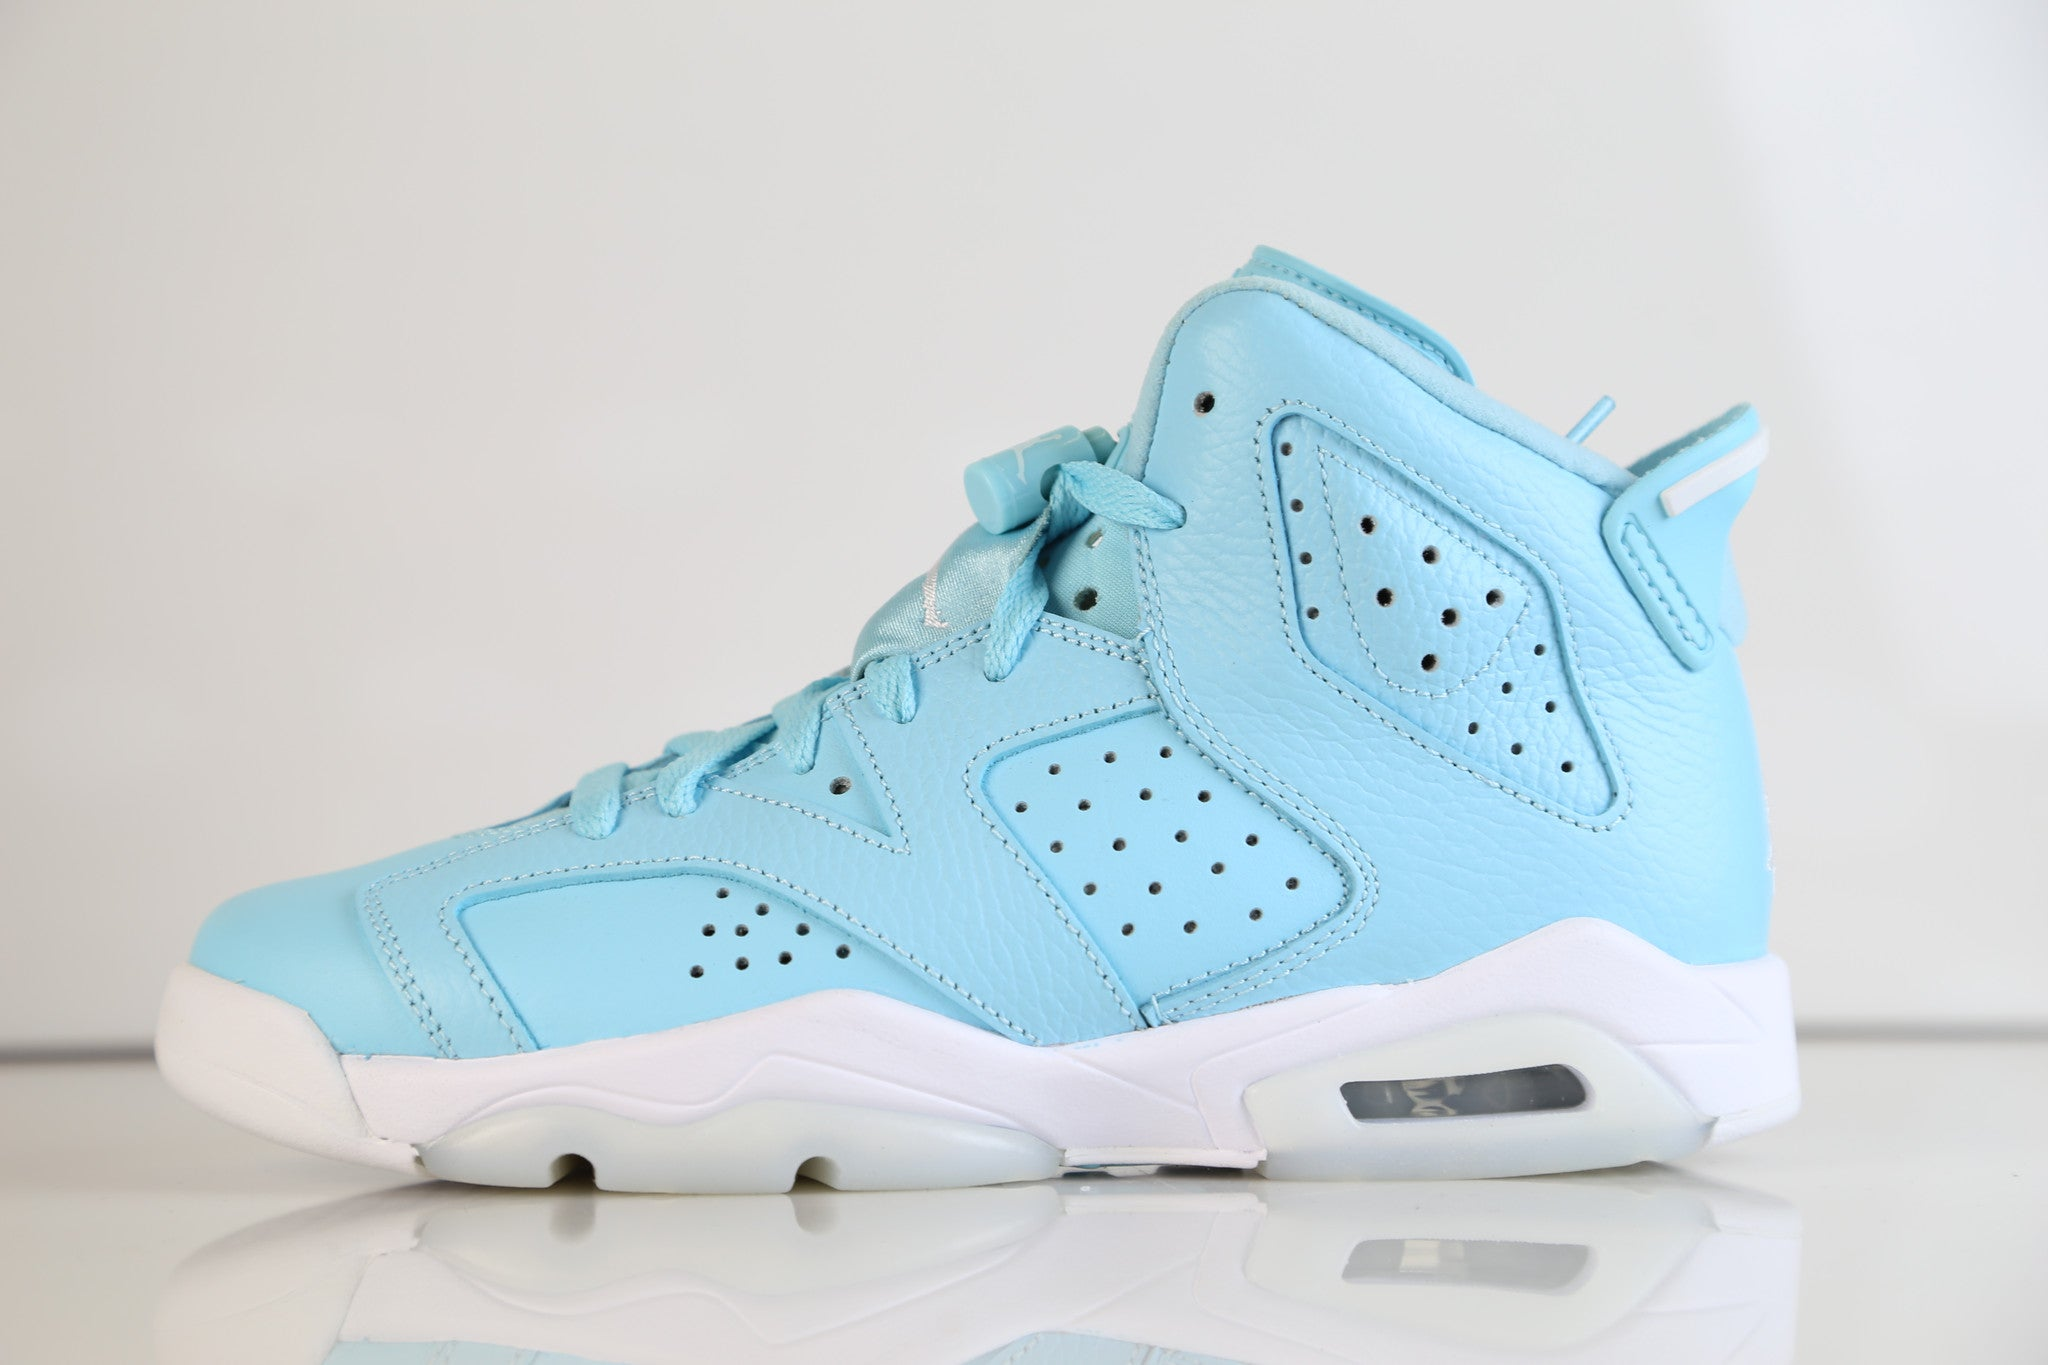 13c706c83e9 Nike Air Jordan Retro 6 Pantone Still Blue GG GS 543390-407 2017 (NO C |  Zadehkicks